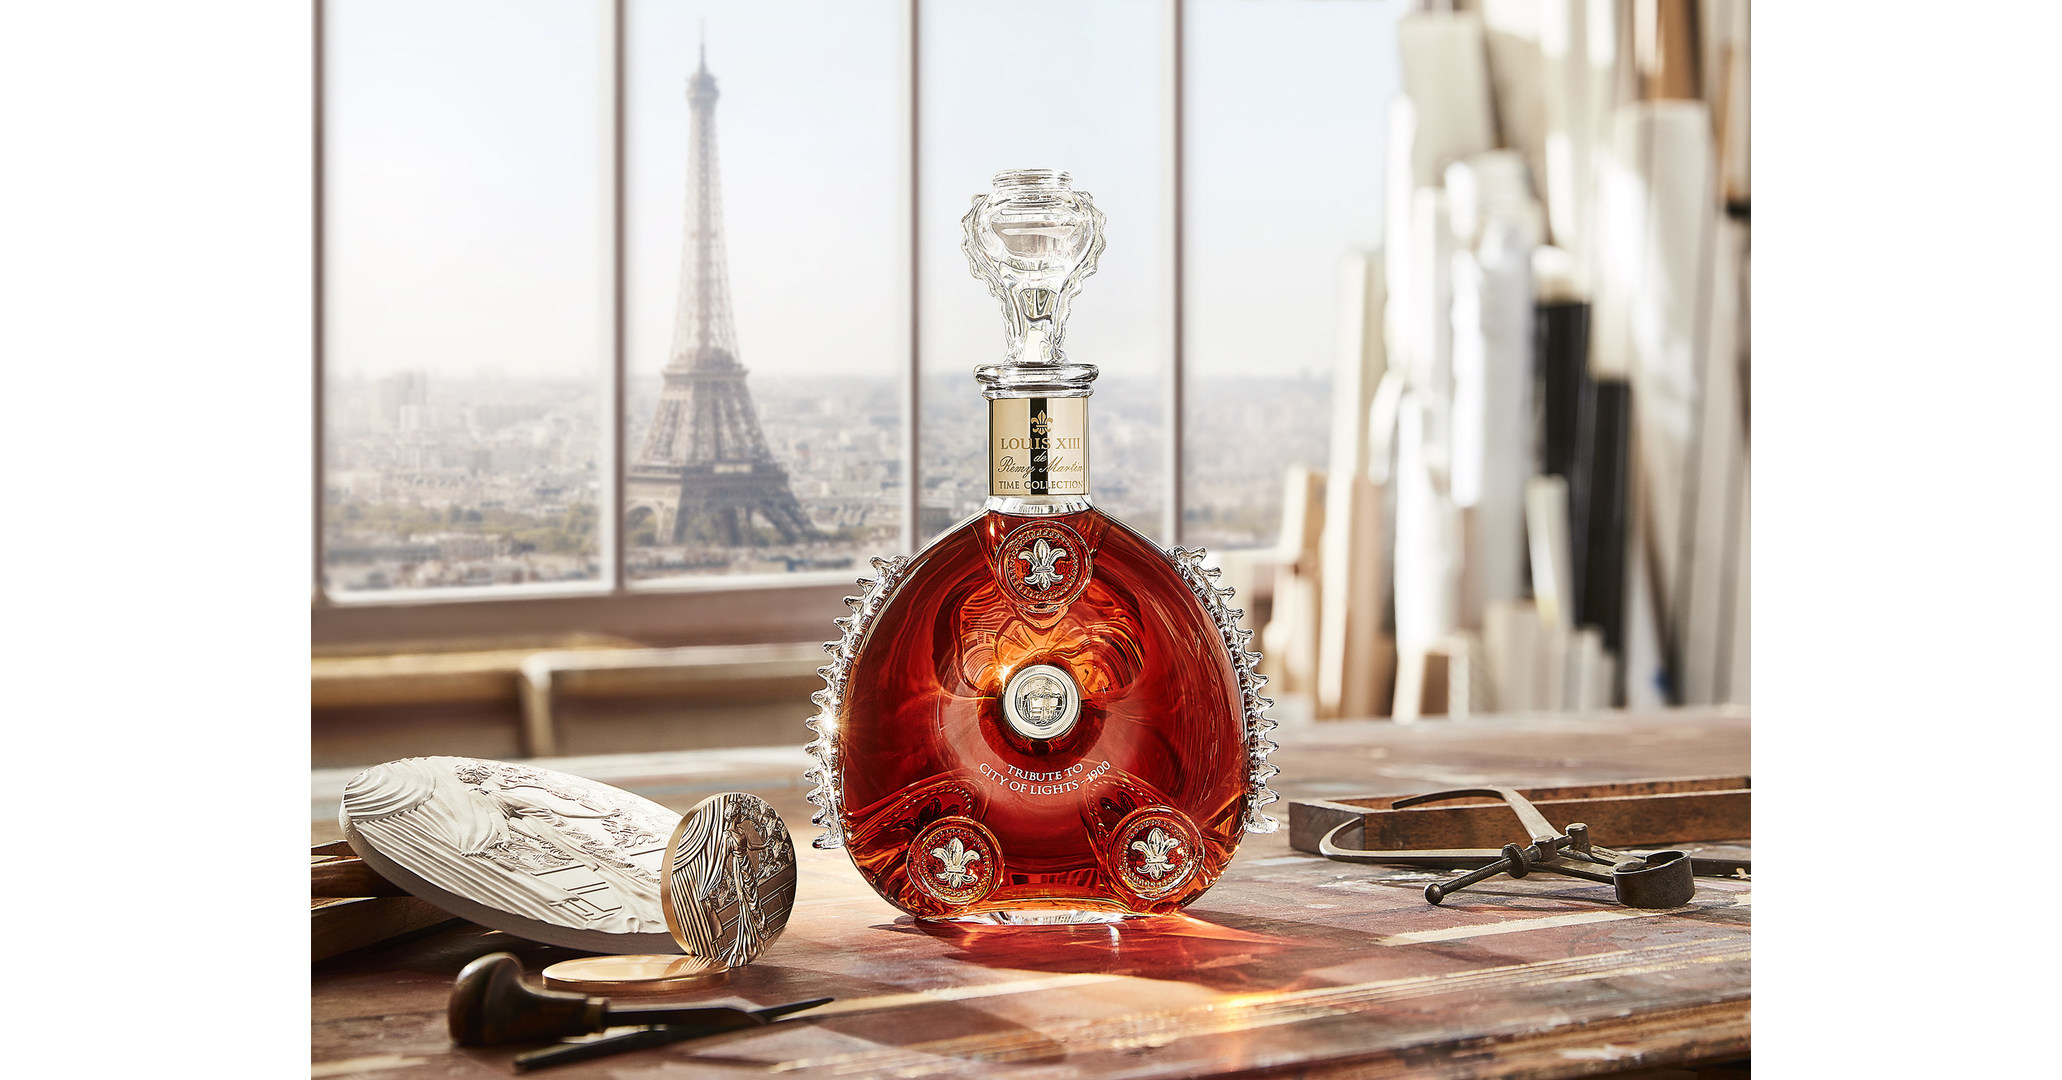 Louis Xiii Cognac Launches A New Limited Edition Celebrating Paris In 1900 With Its Second Opus Of Time Collection